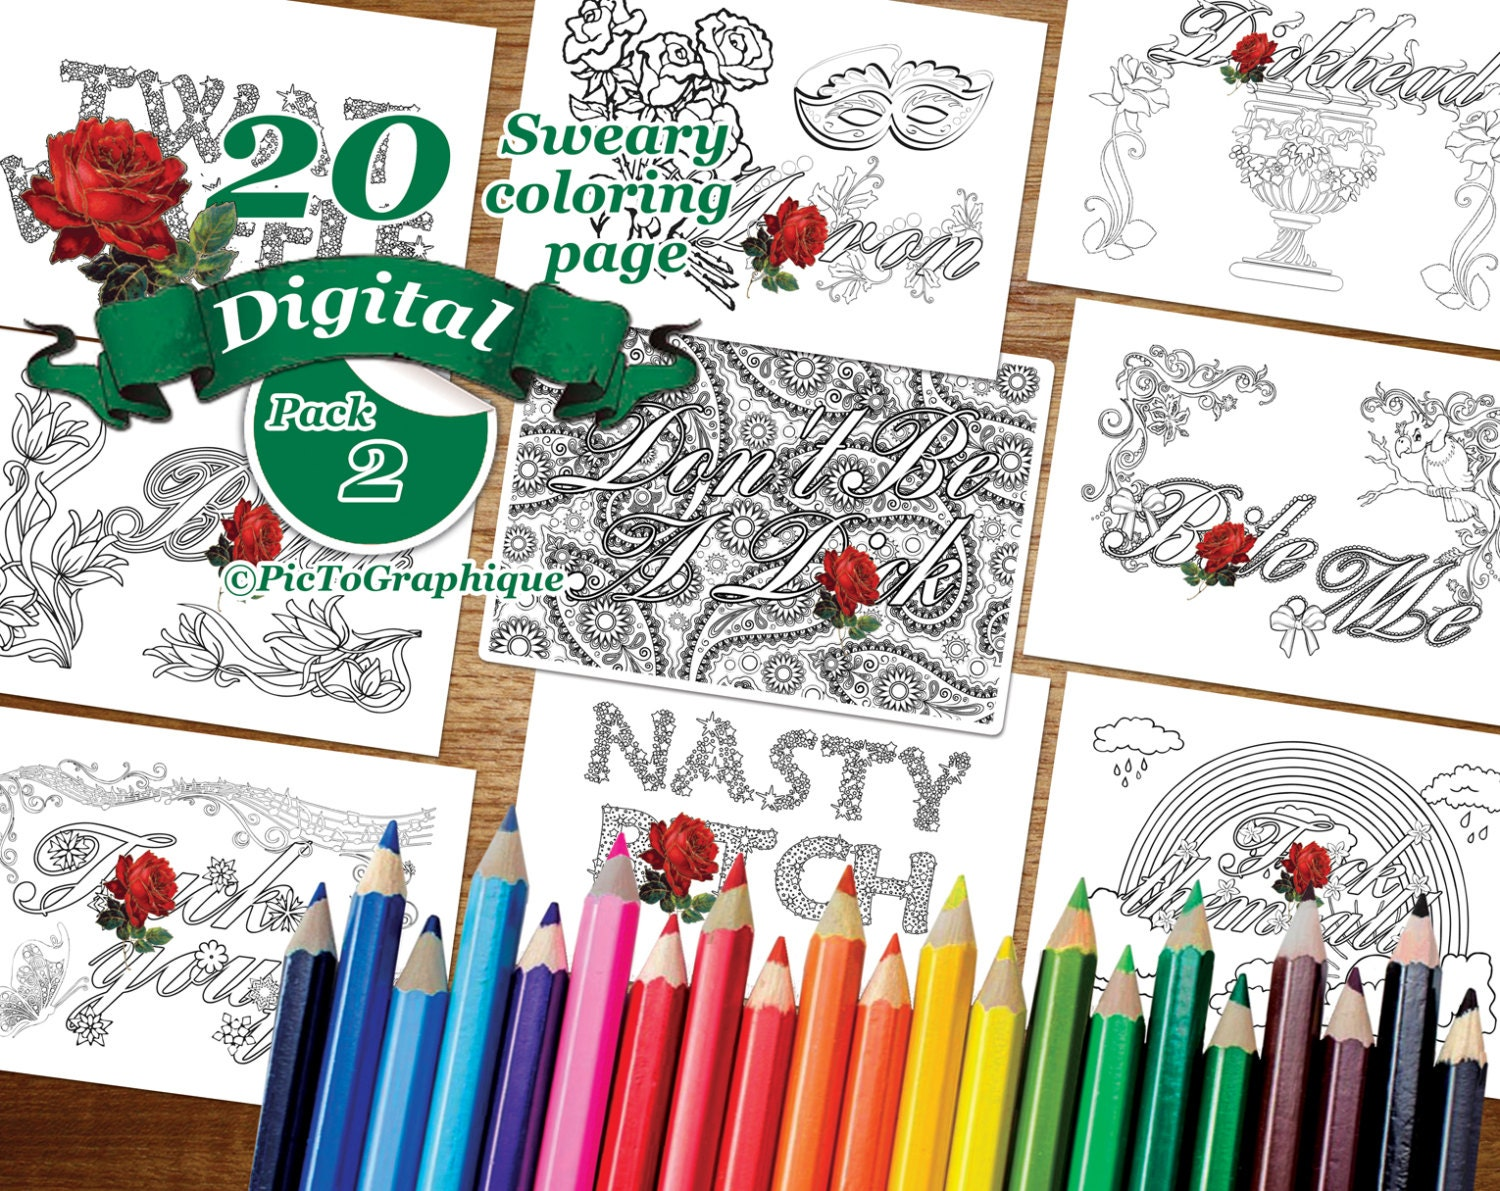 Sweary Coloring Book Download : 20 SWEAR Coloring Word Instant Download Digital Pack of 20